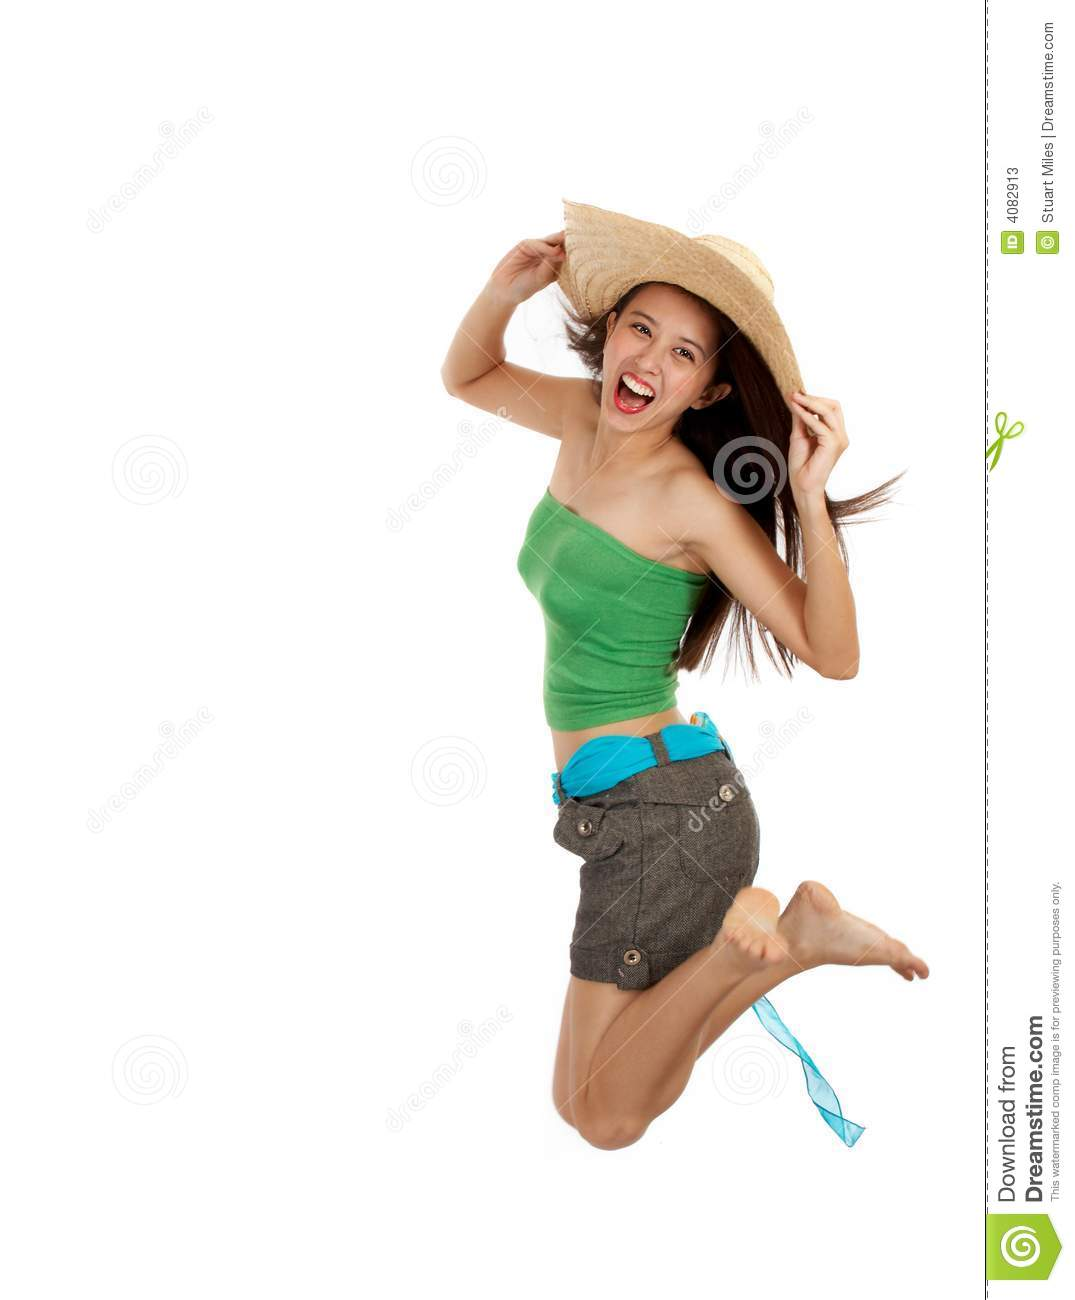 Girl Jump In Excitement Stock Photos - Image: 4082913